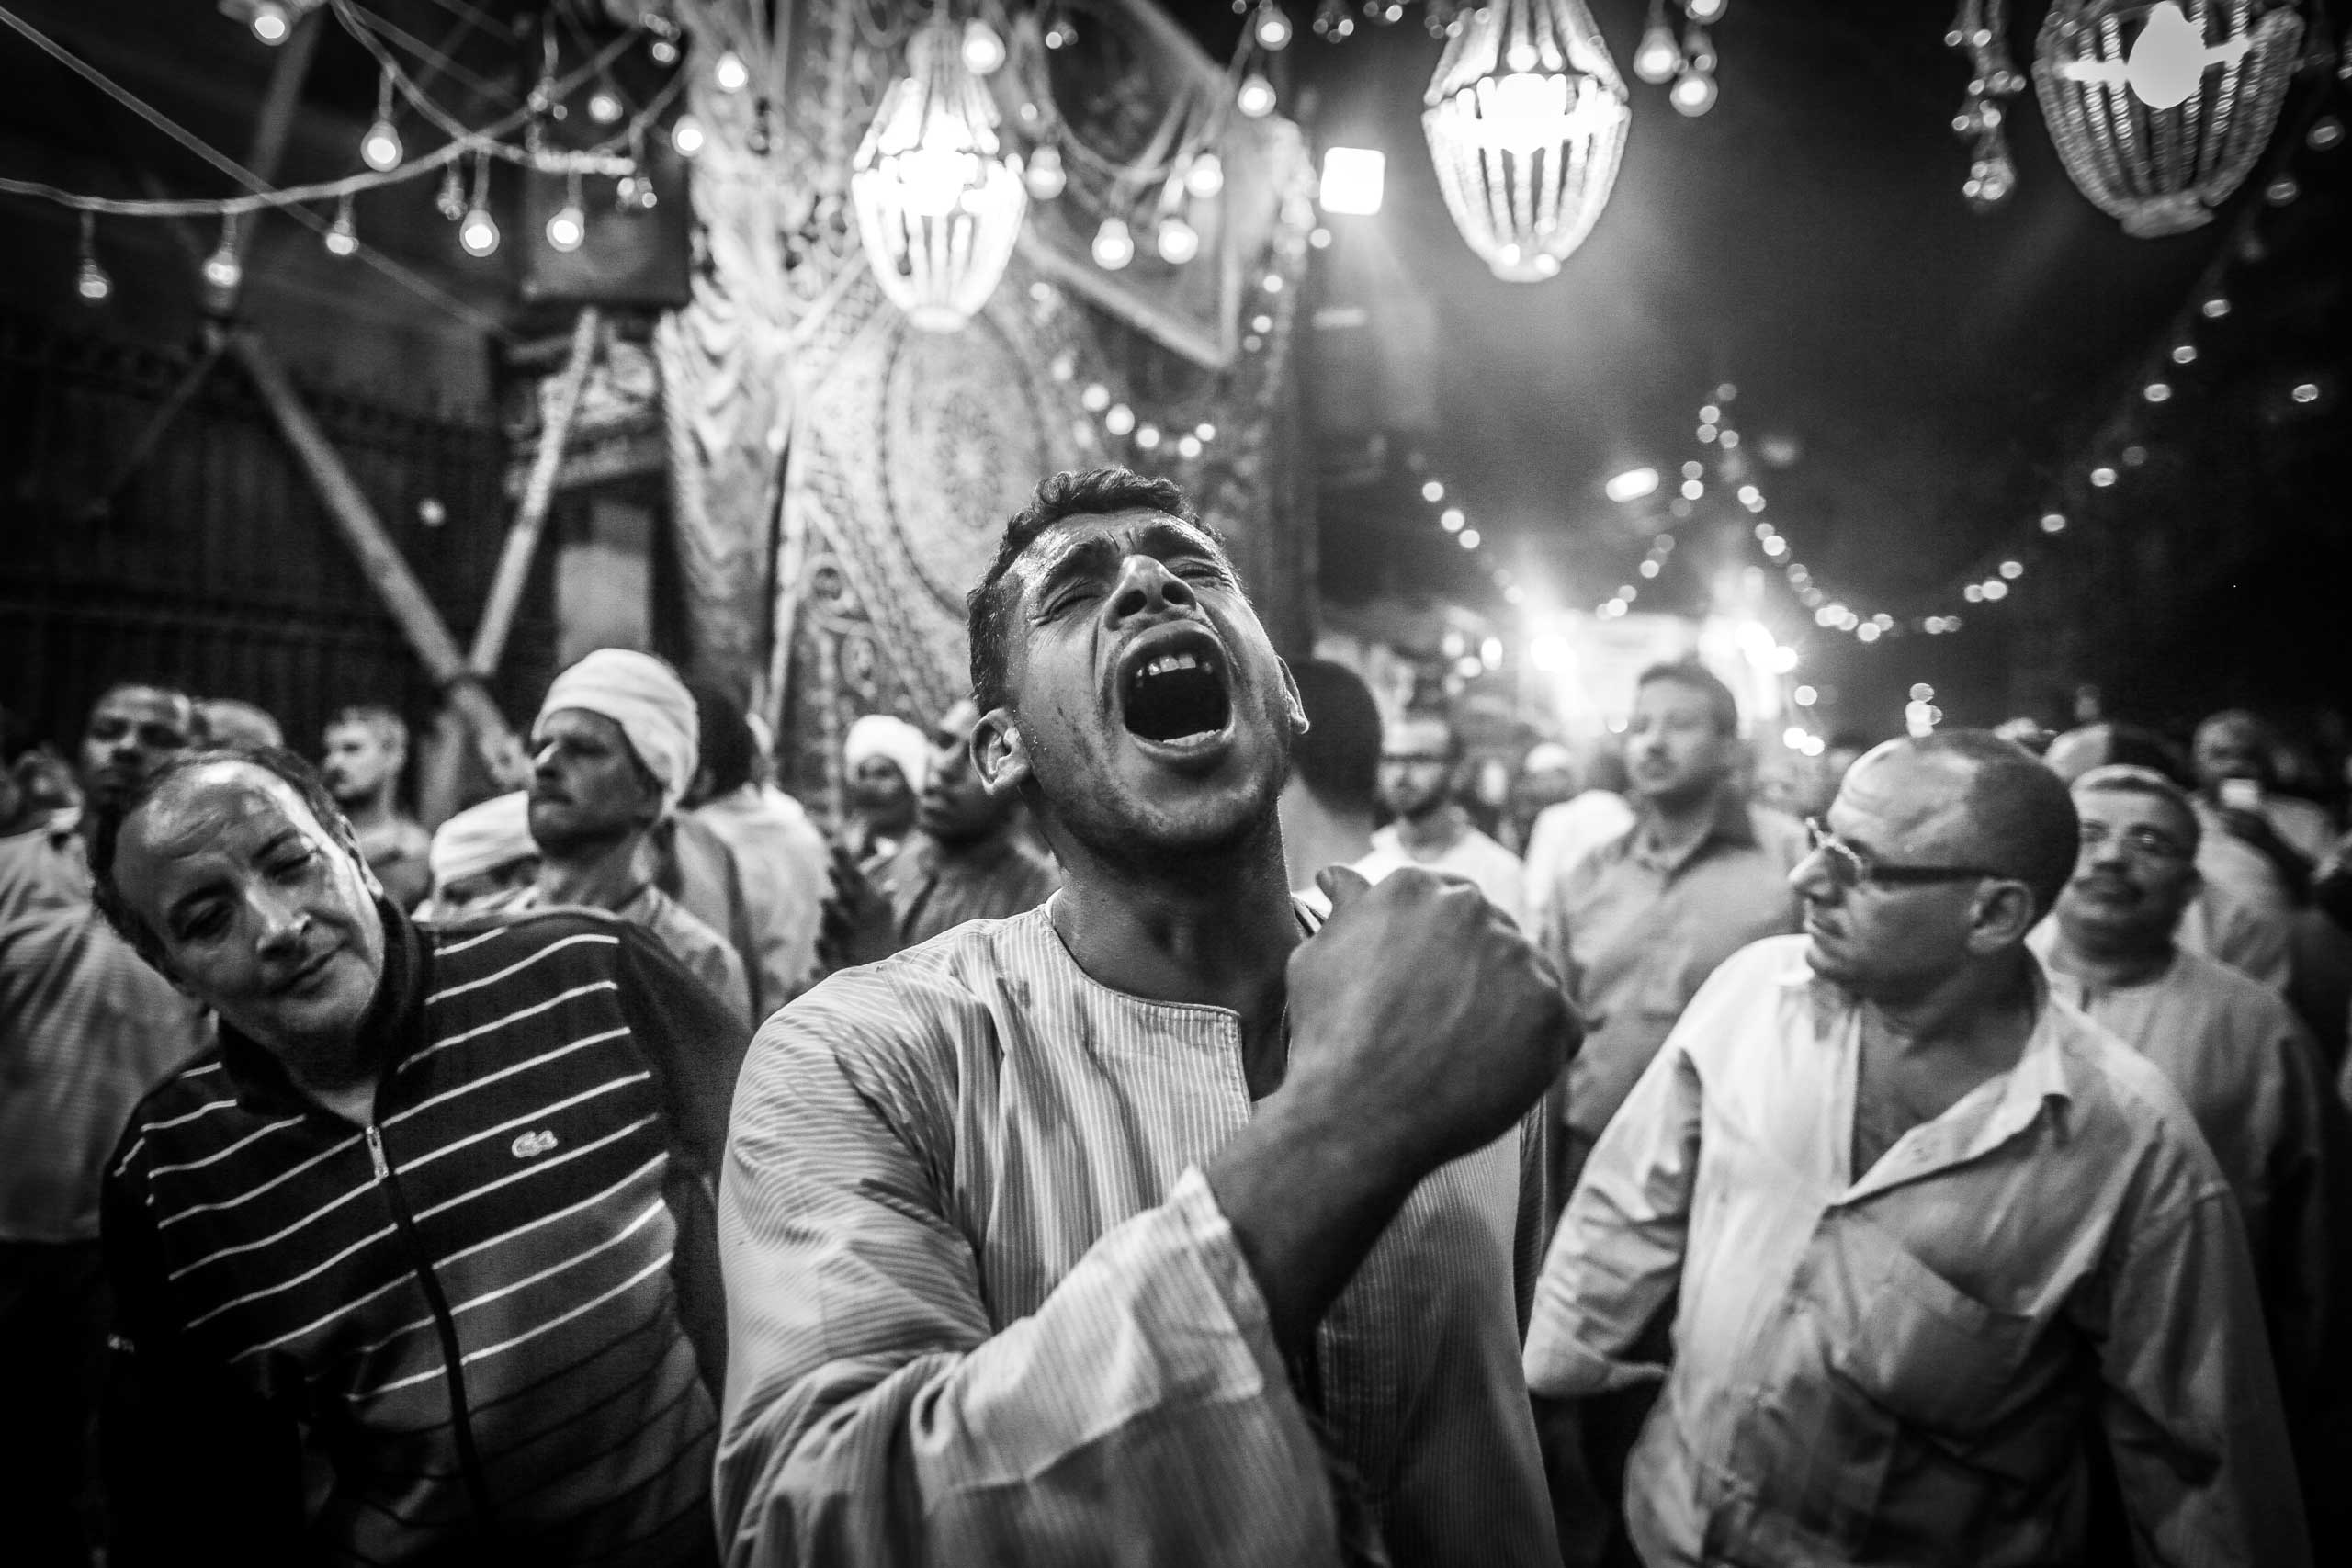 TIME LightBox: Exploring the Mawlids of EgyptWorshippers at a celebration at the Sayeda Zeinab mosque take part in a performance called Hadra, in which they whirl for long periods. Downtown Cairo, Egypt, May 20, 2014.